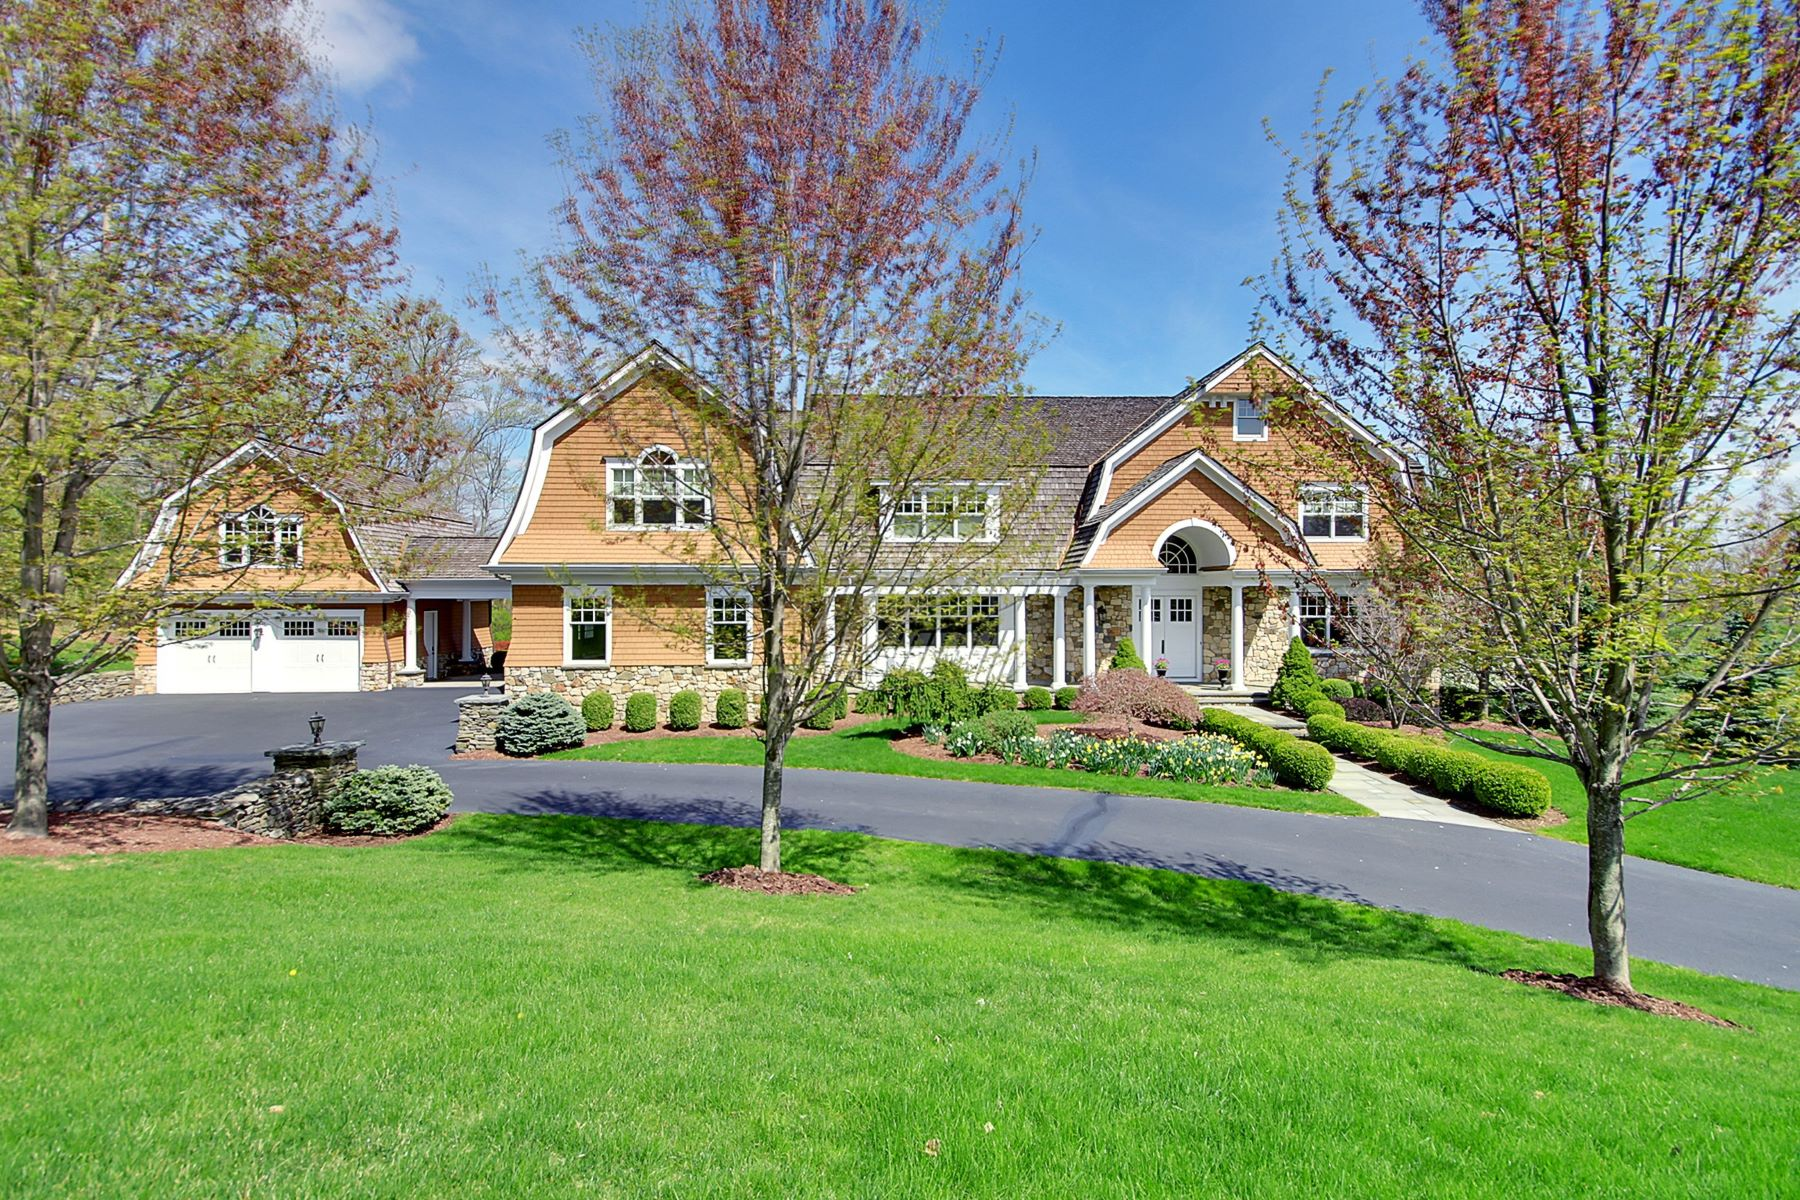 Single Family Home for Sale at Grand. Custom. Spacious. 55 Wisteria Way Basking Ridge, New Jersey 07920 United States